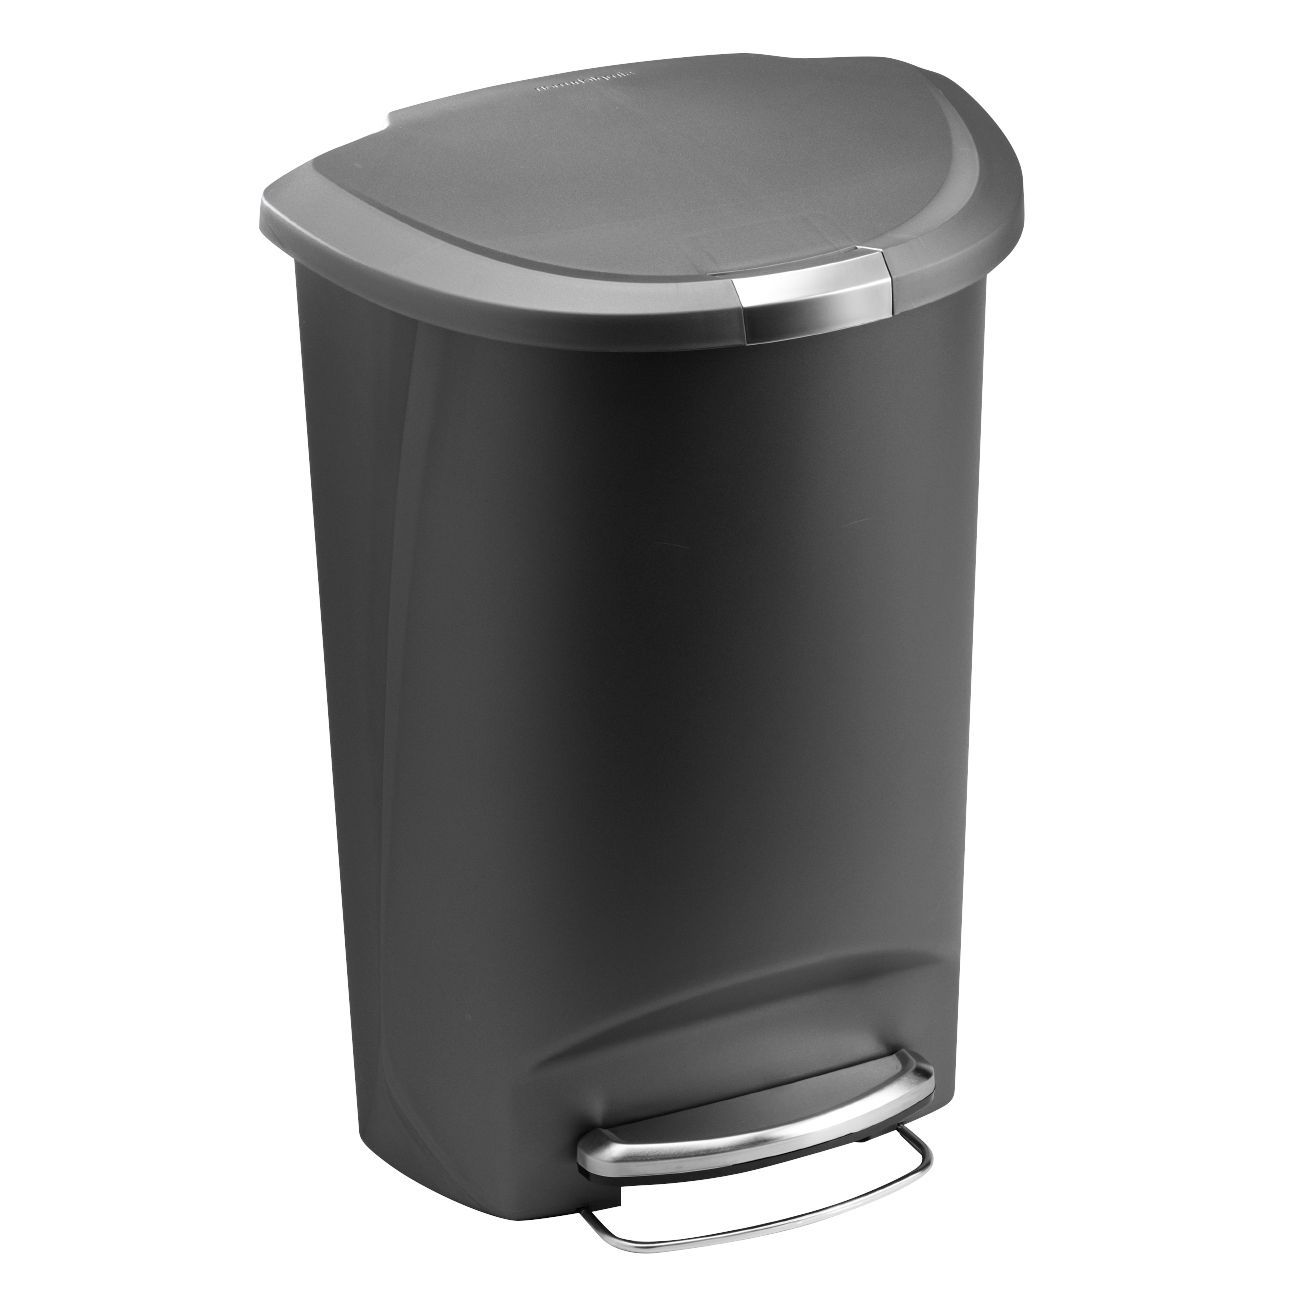 poubelle simplehuman 50 l simplehuman plastic semi round 50 liter step on trash can. Black Bedroom Furniture Sets. Home Design Ideas